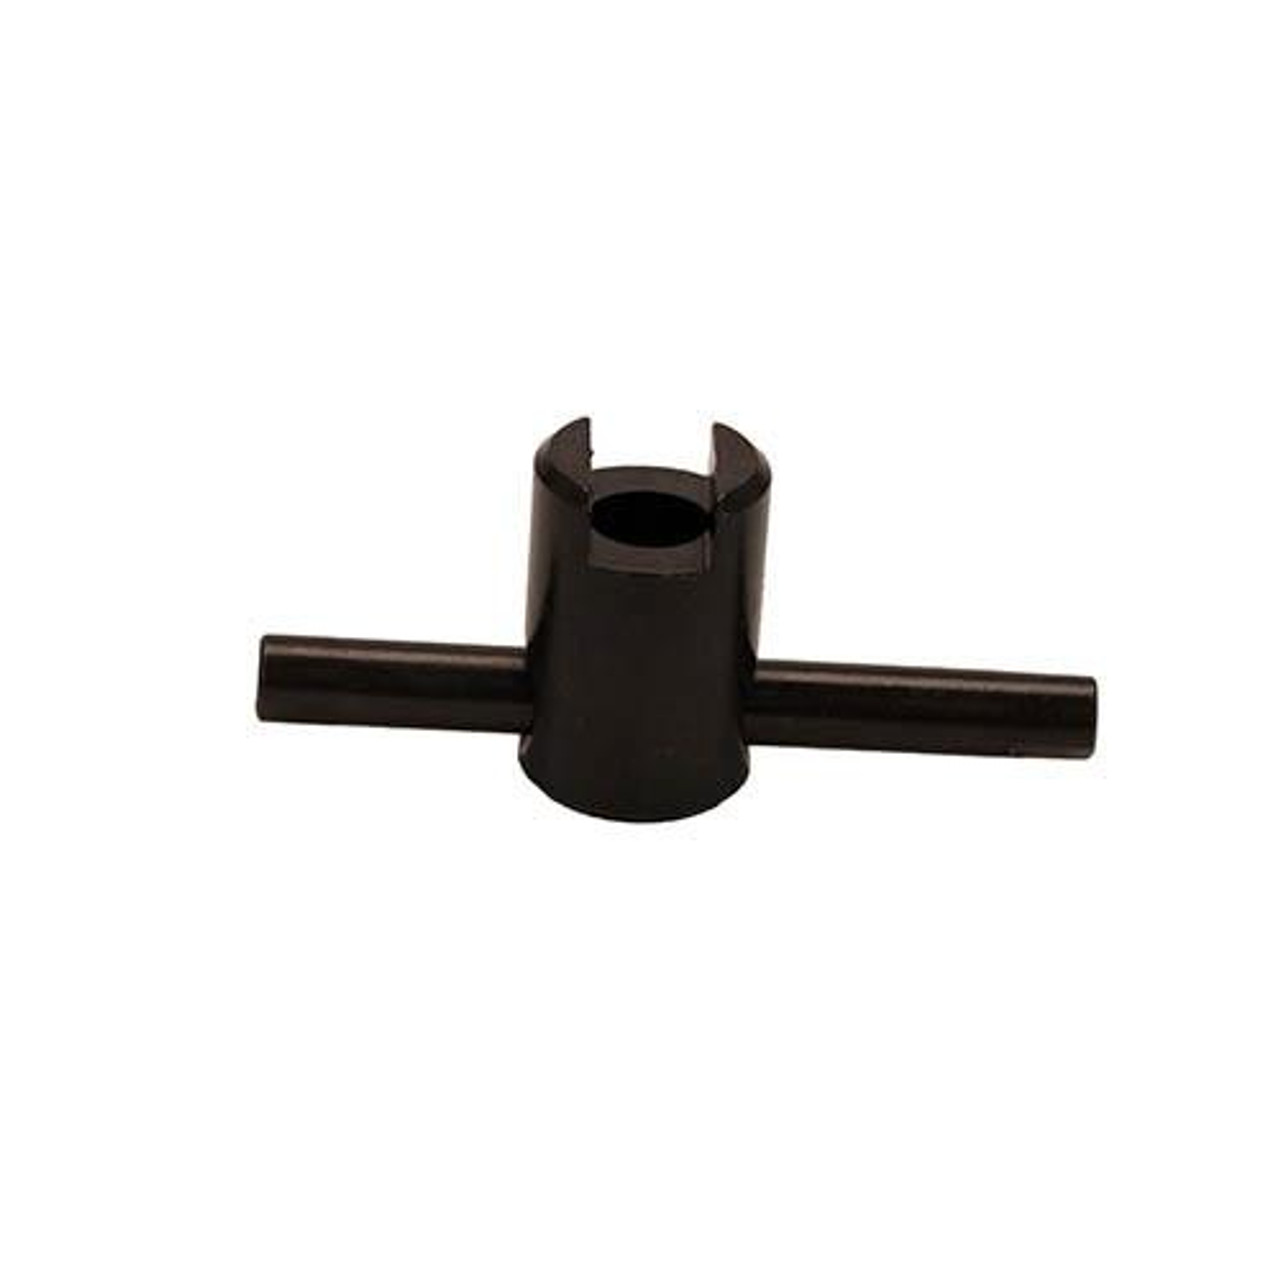 Thompson Center Accessories Wedge Pin Puller w//Built in Nipple Wrench